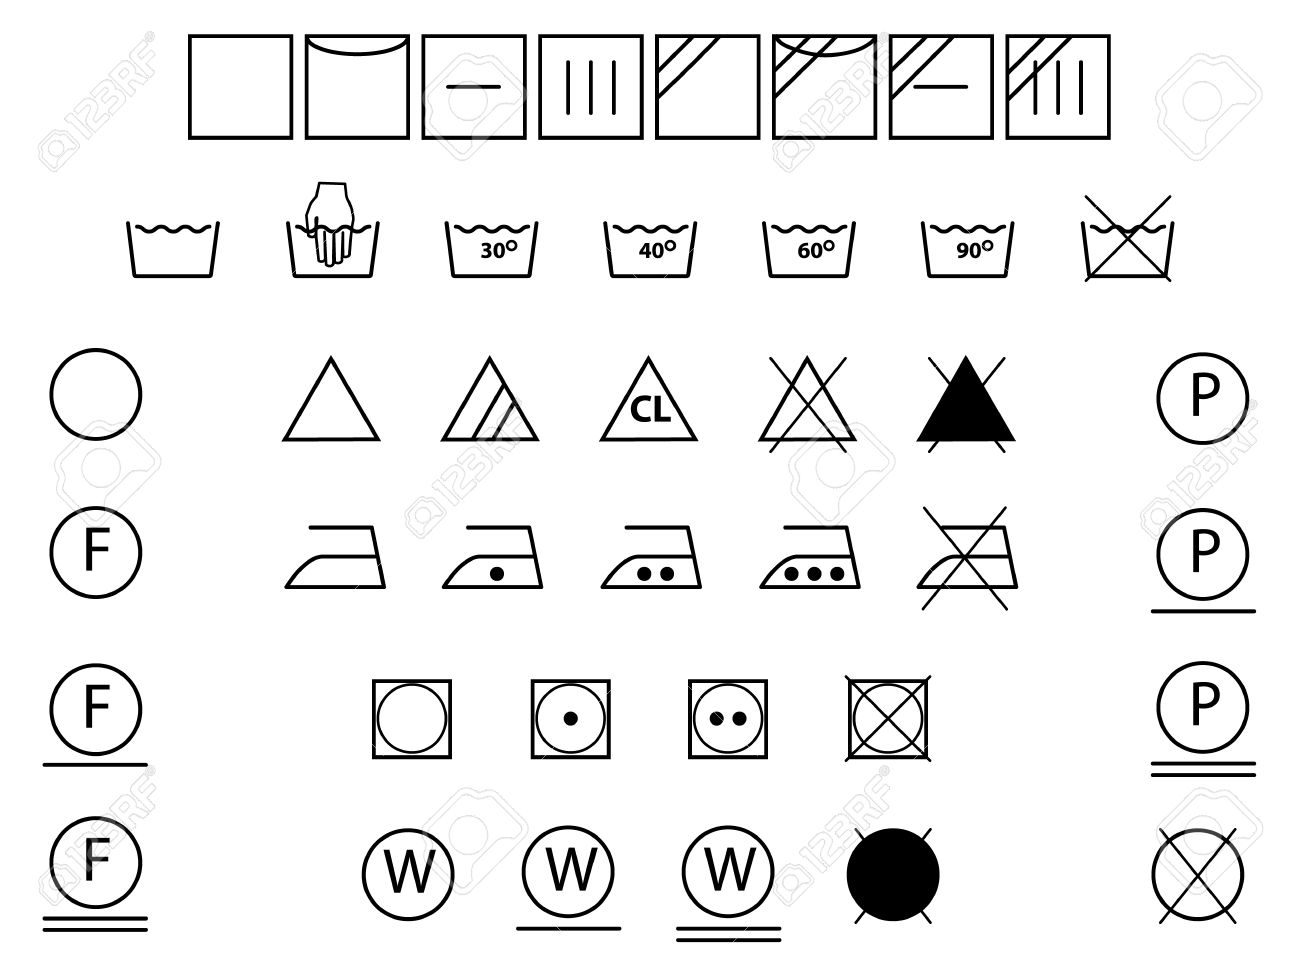 Laundry symbols for washingdryingbleachingironing royalty free laundry symbols for washingdryingbleachingironing stock vector 28994454 biocorpaavc Image collections